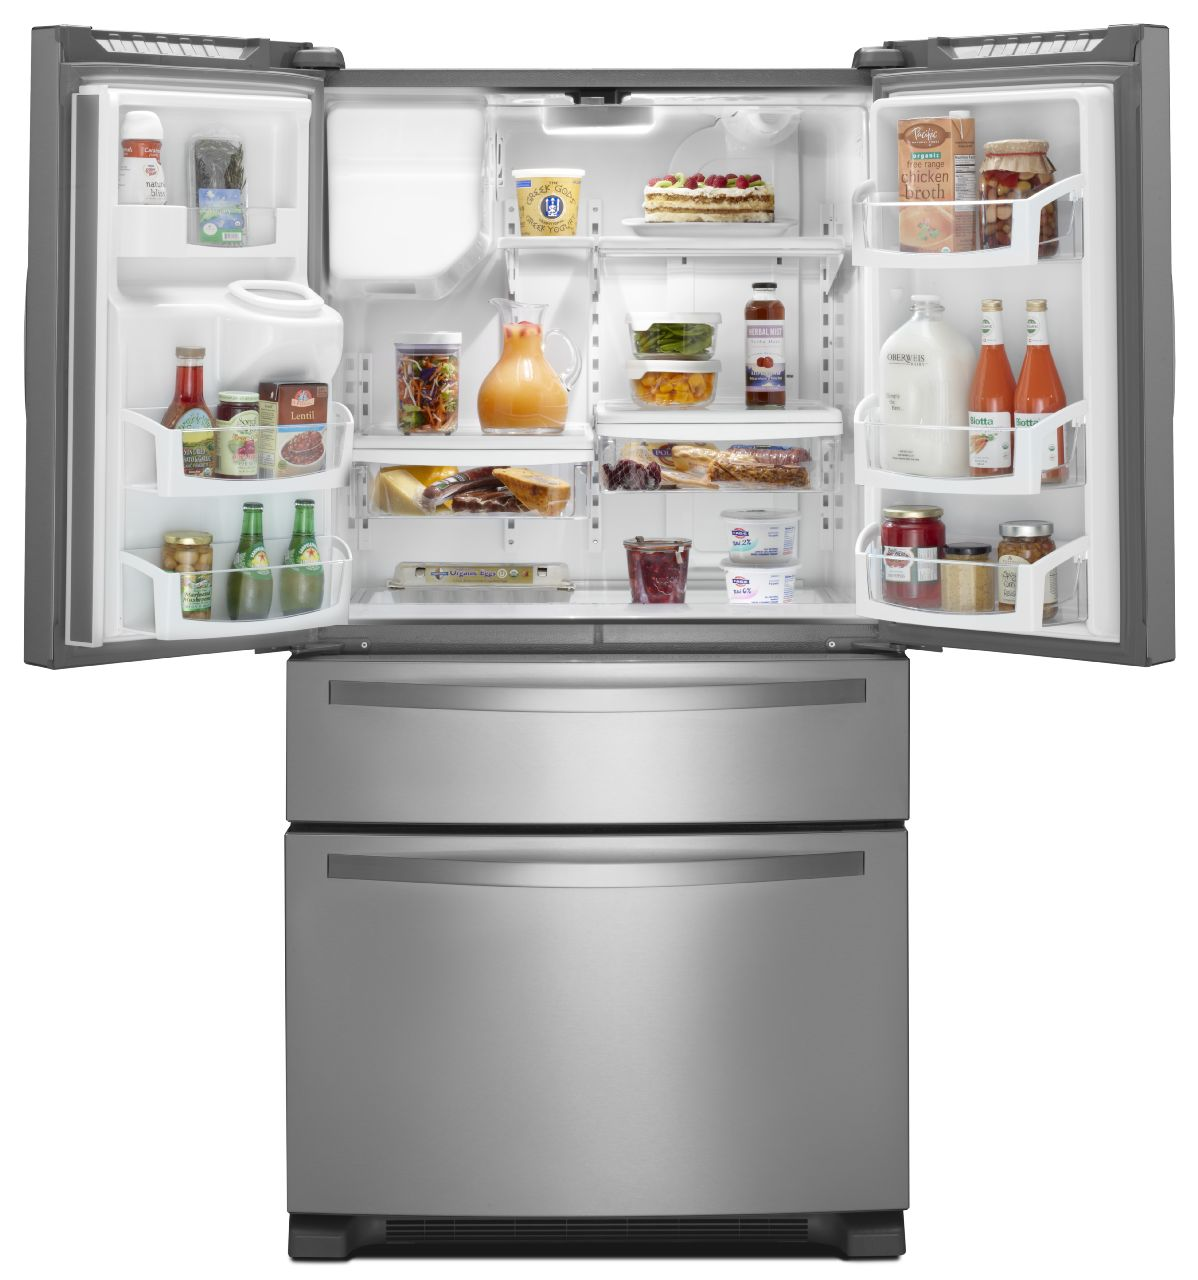 Whirlpool 25.0 cu. ft. French Door Refrigerator w/ Refrigerated Drawer - Stainless Steel